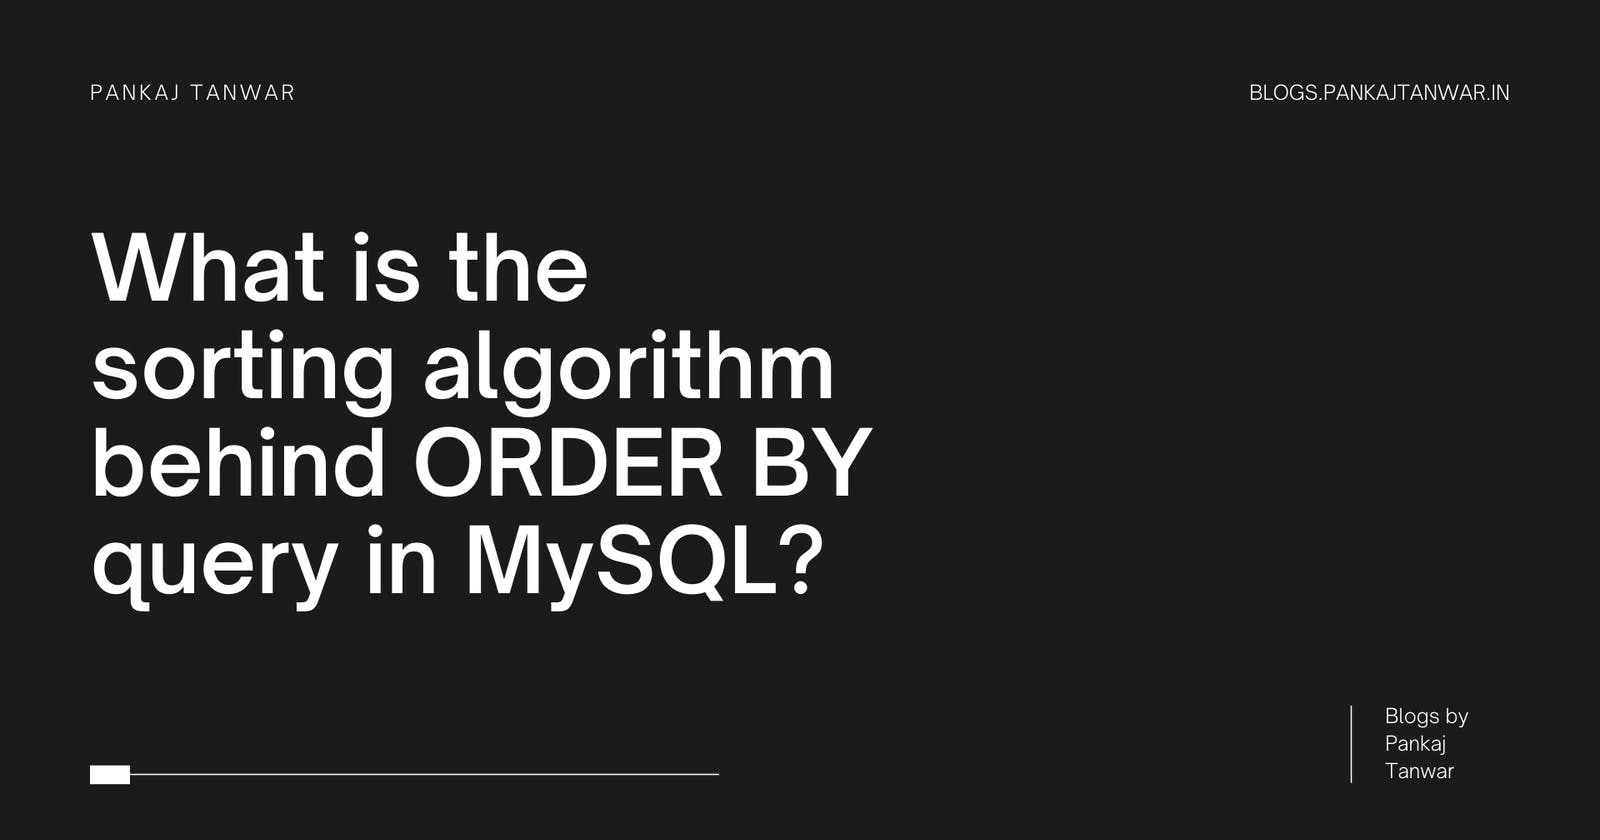 What is the sorting algorithm behind ORDER BY query in MySQL?